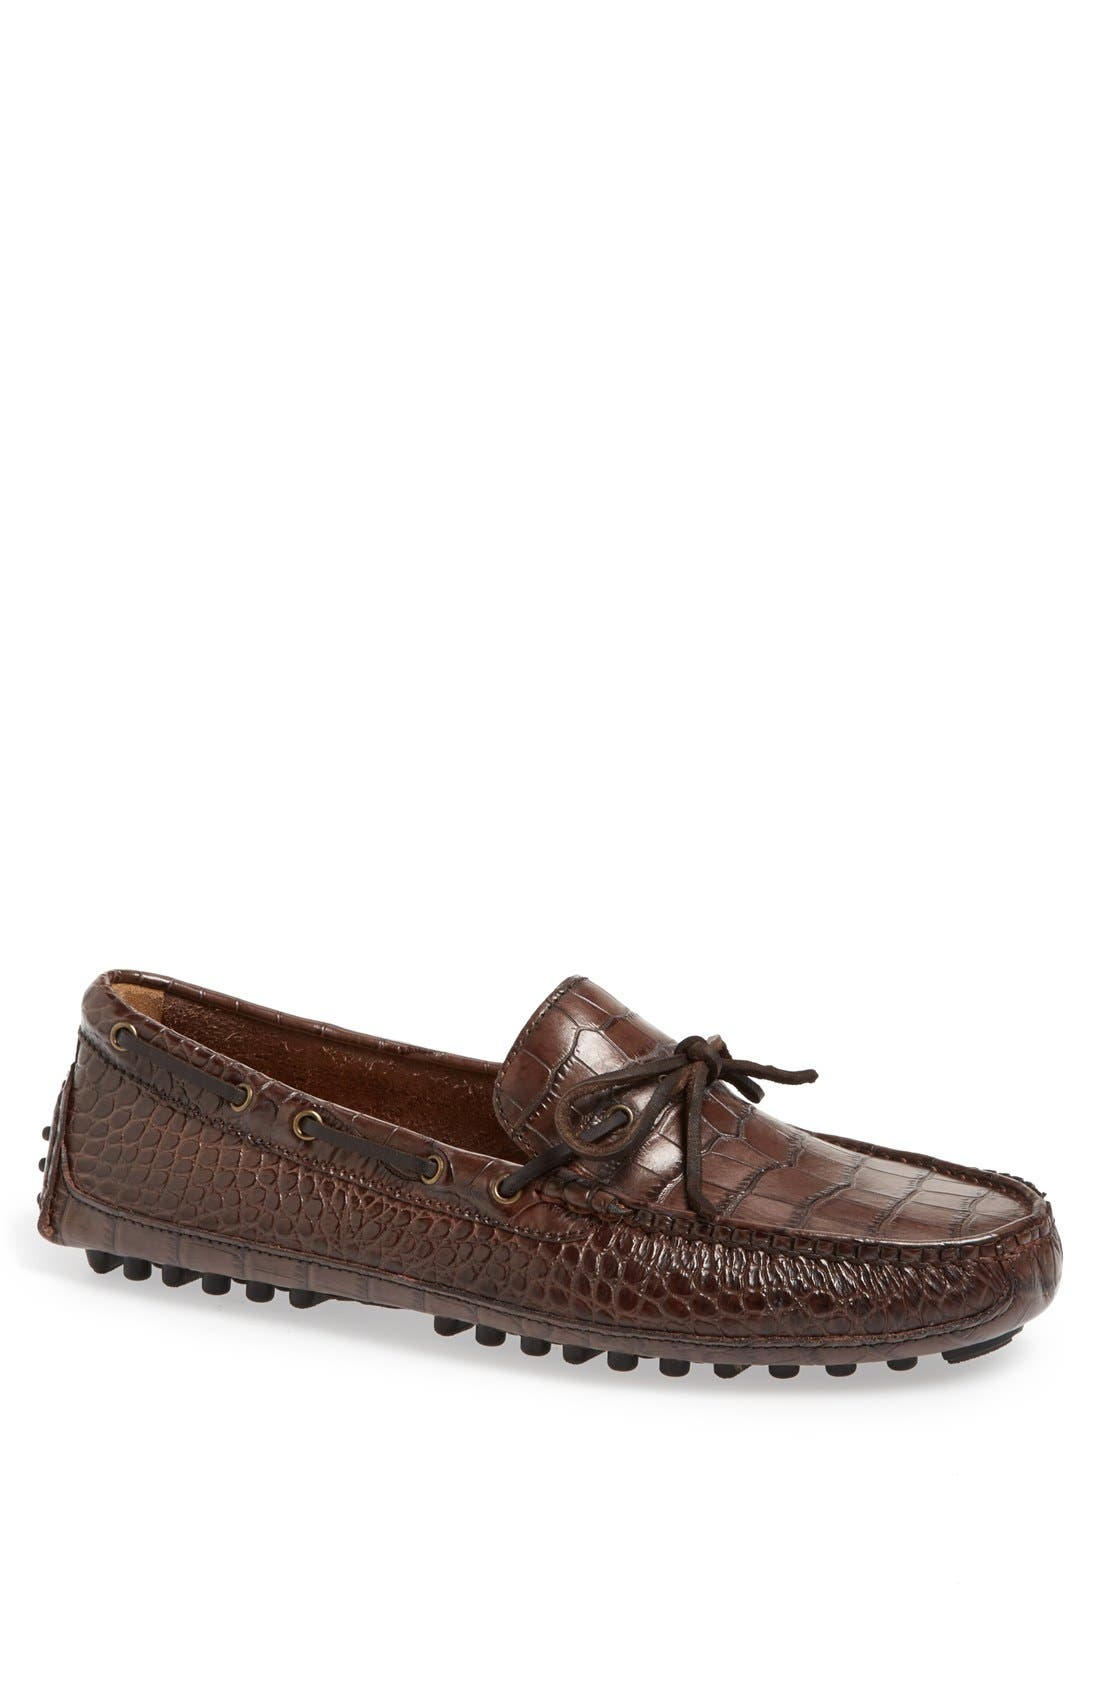 Main Image - Cole Haan 'Grant Canoe Camp' Driving Moccasin (Men)